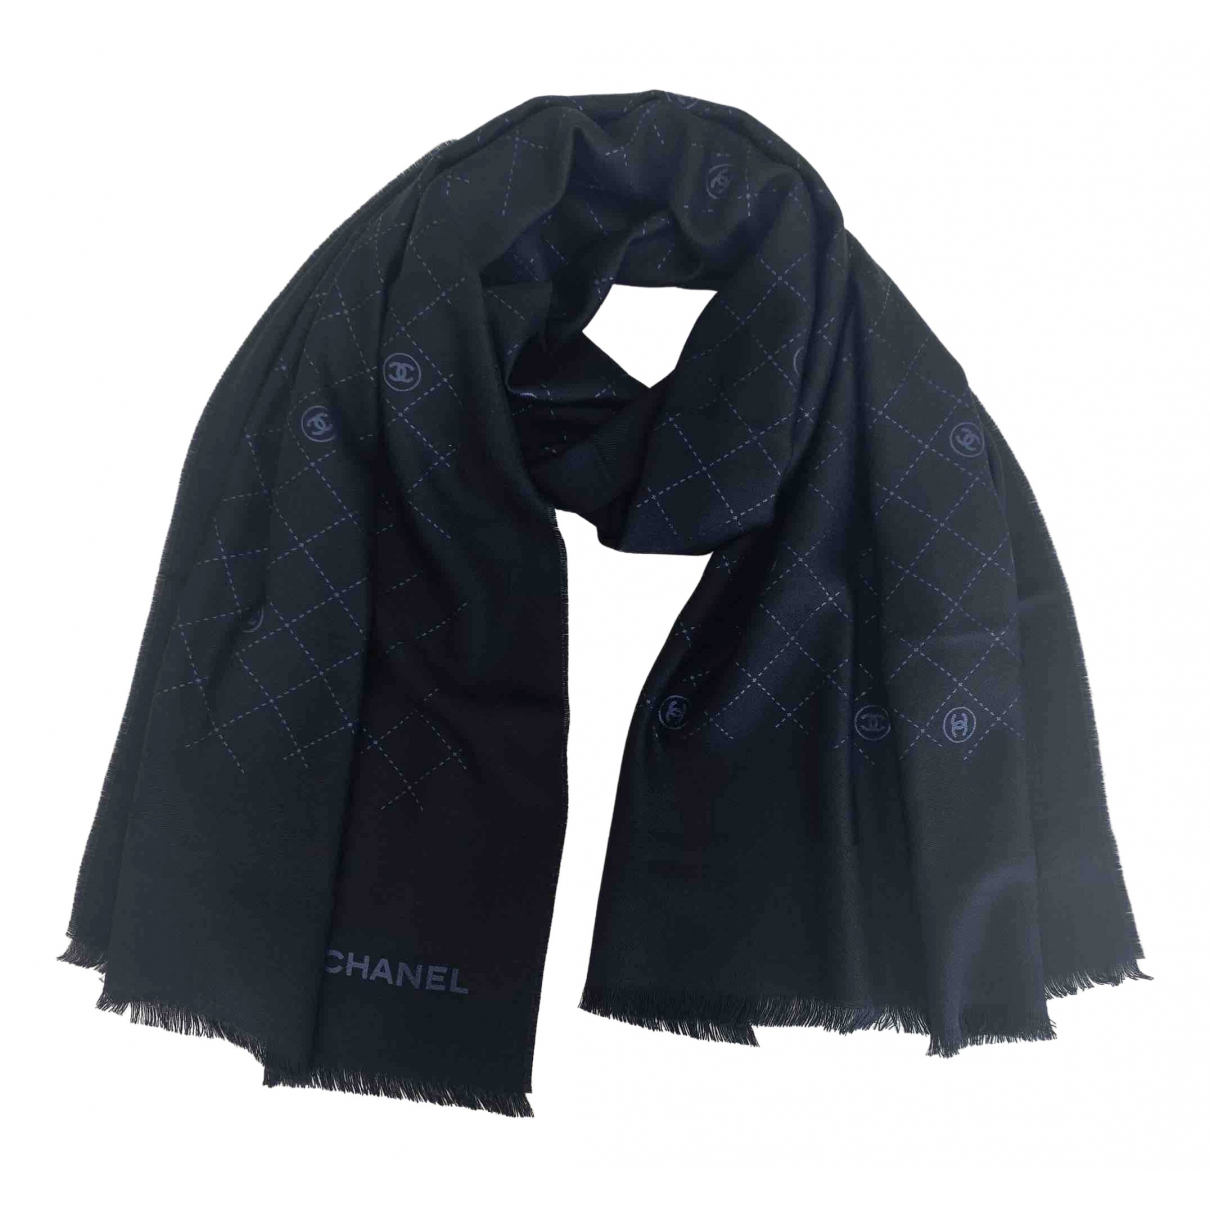 Chanel \N Black Wool scarf for Women \N